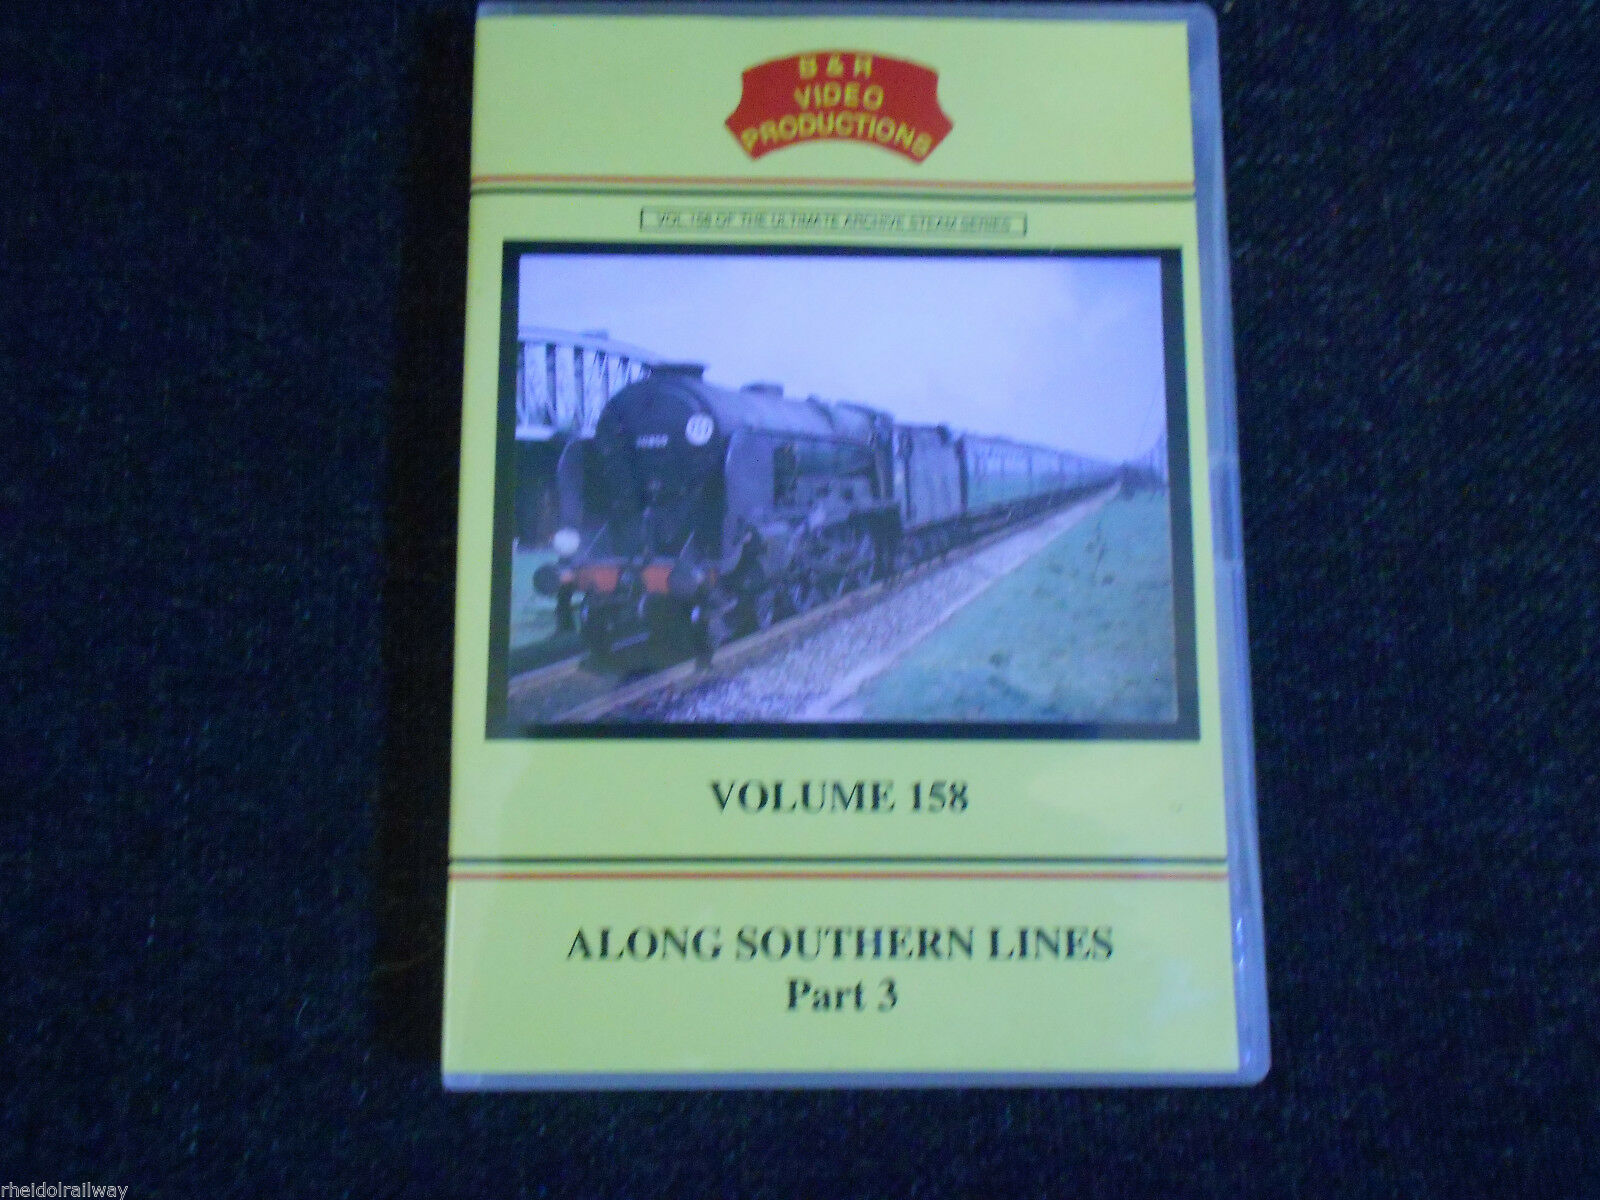 Basingstoke,Isle Of Wight, Along Southern Lines Part 3, B & R Volume 158 DVD - The Vale of Rheidol Railway